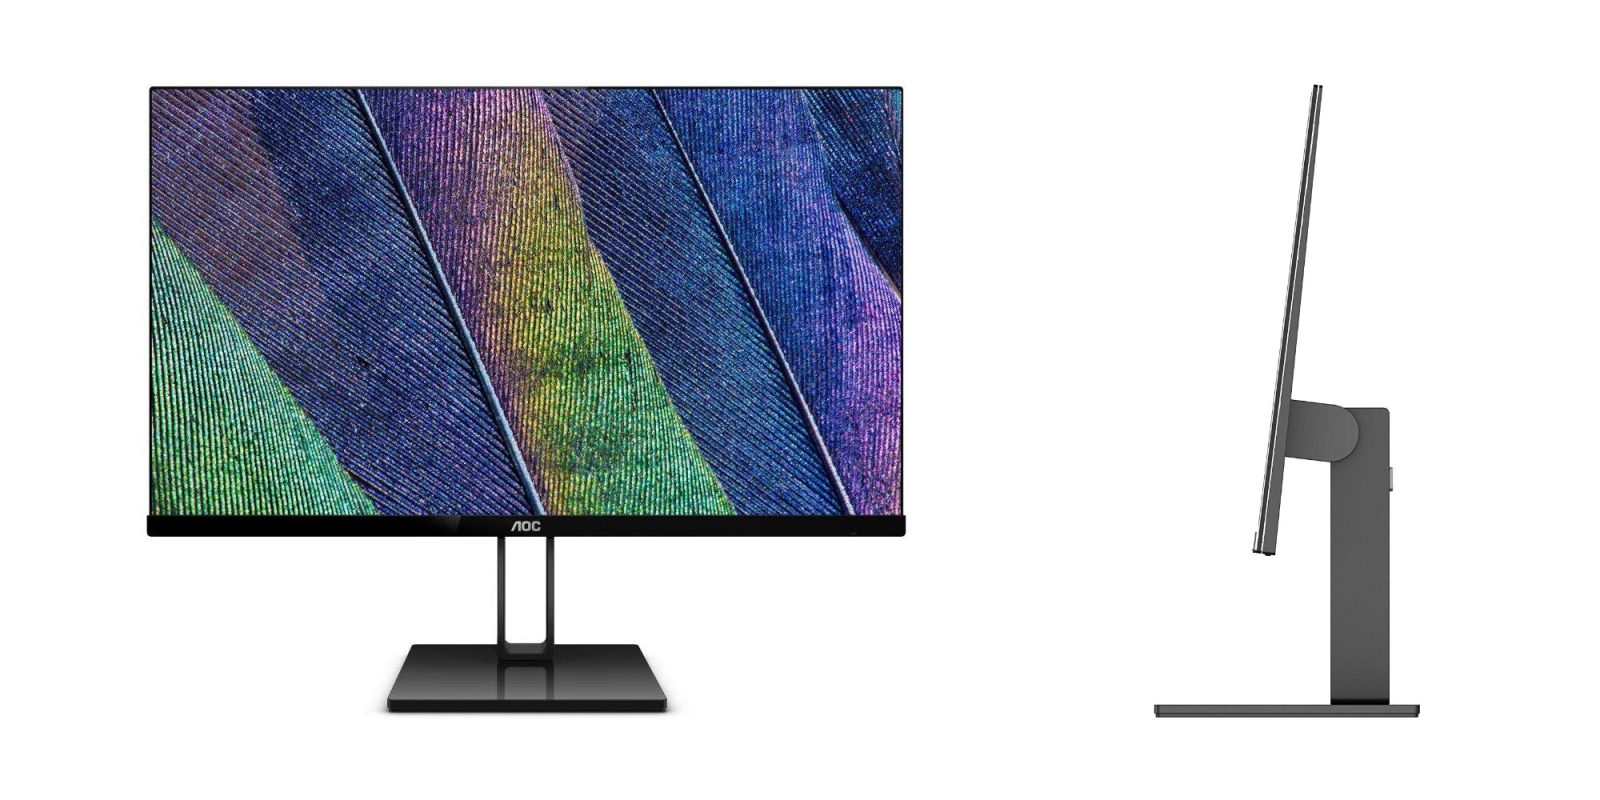 AOC's frameless, ultra-slim FHD Monitor drops to $140 at Amazon, more from $80